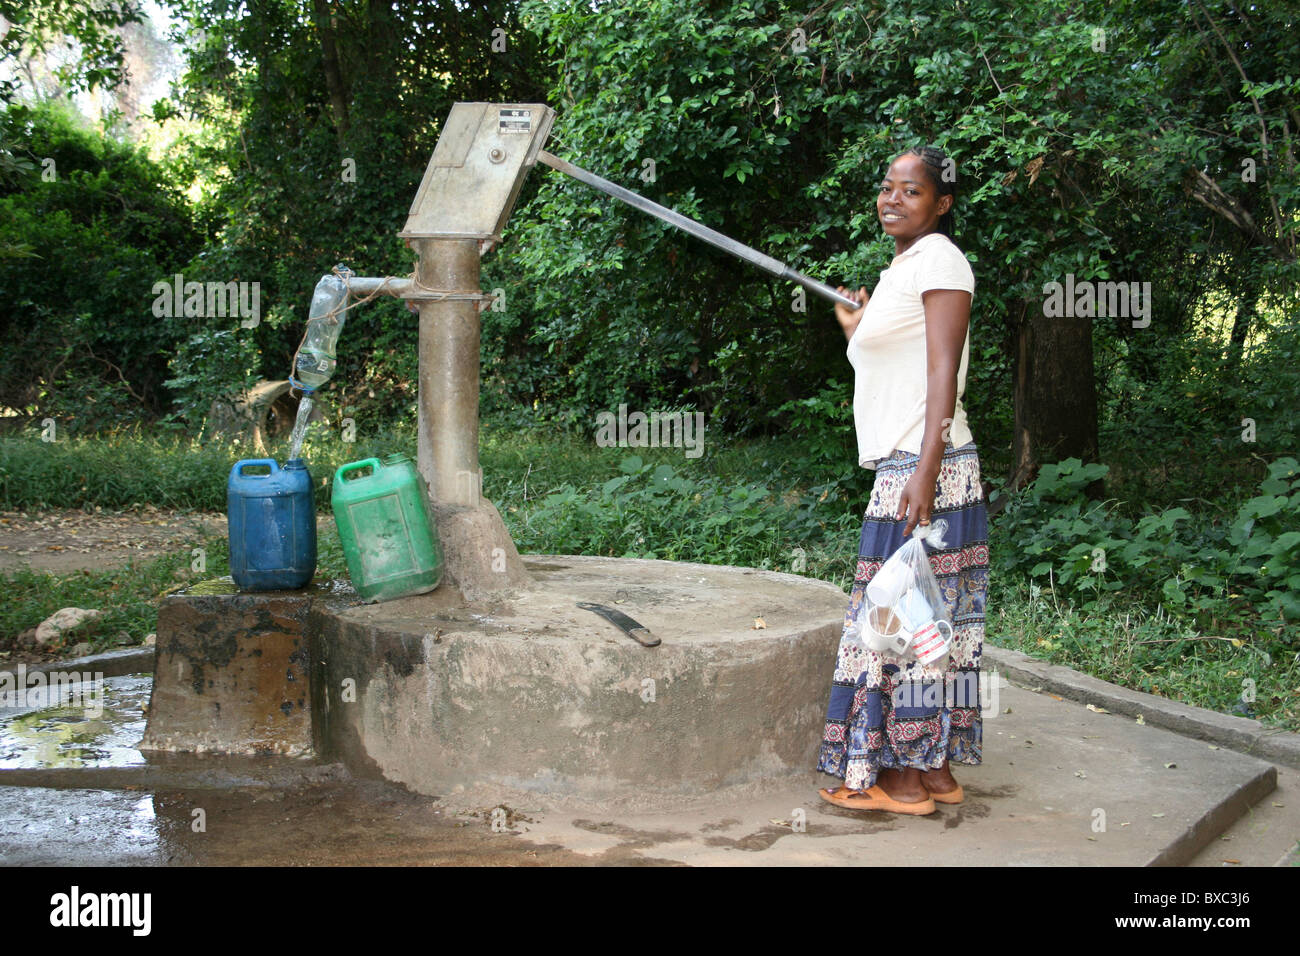 Smiling Ethiopian Woman Pumping Water From A Well - Stock Image